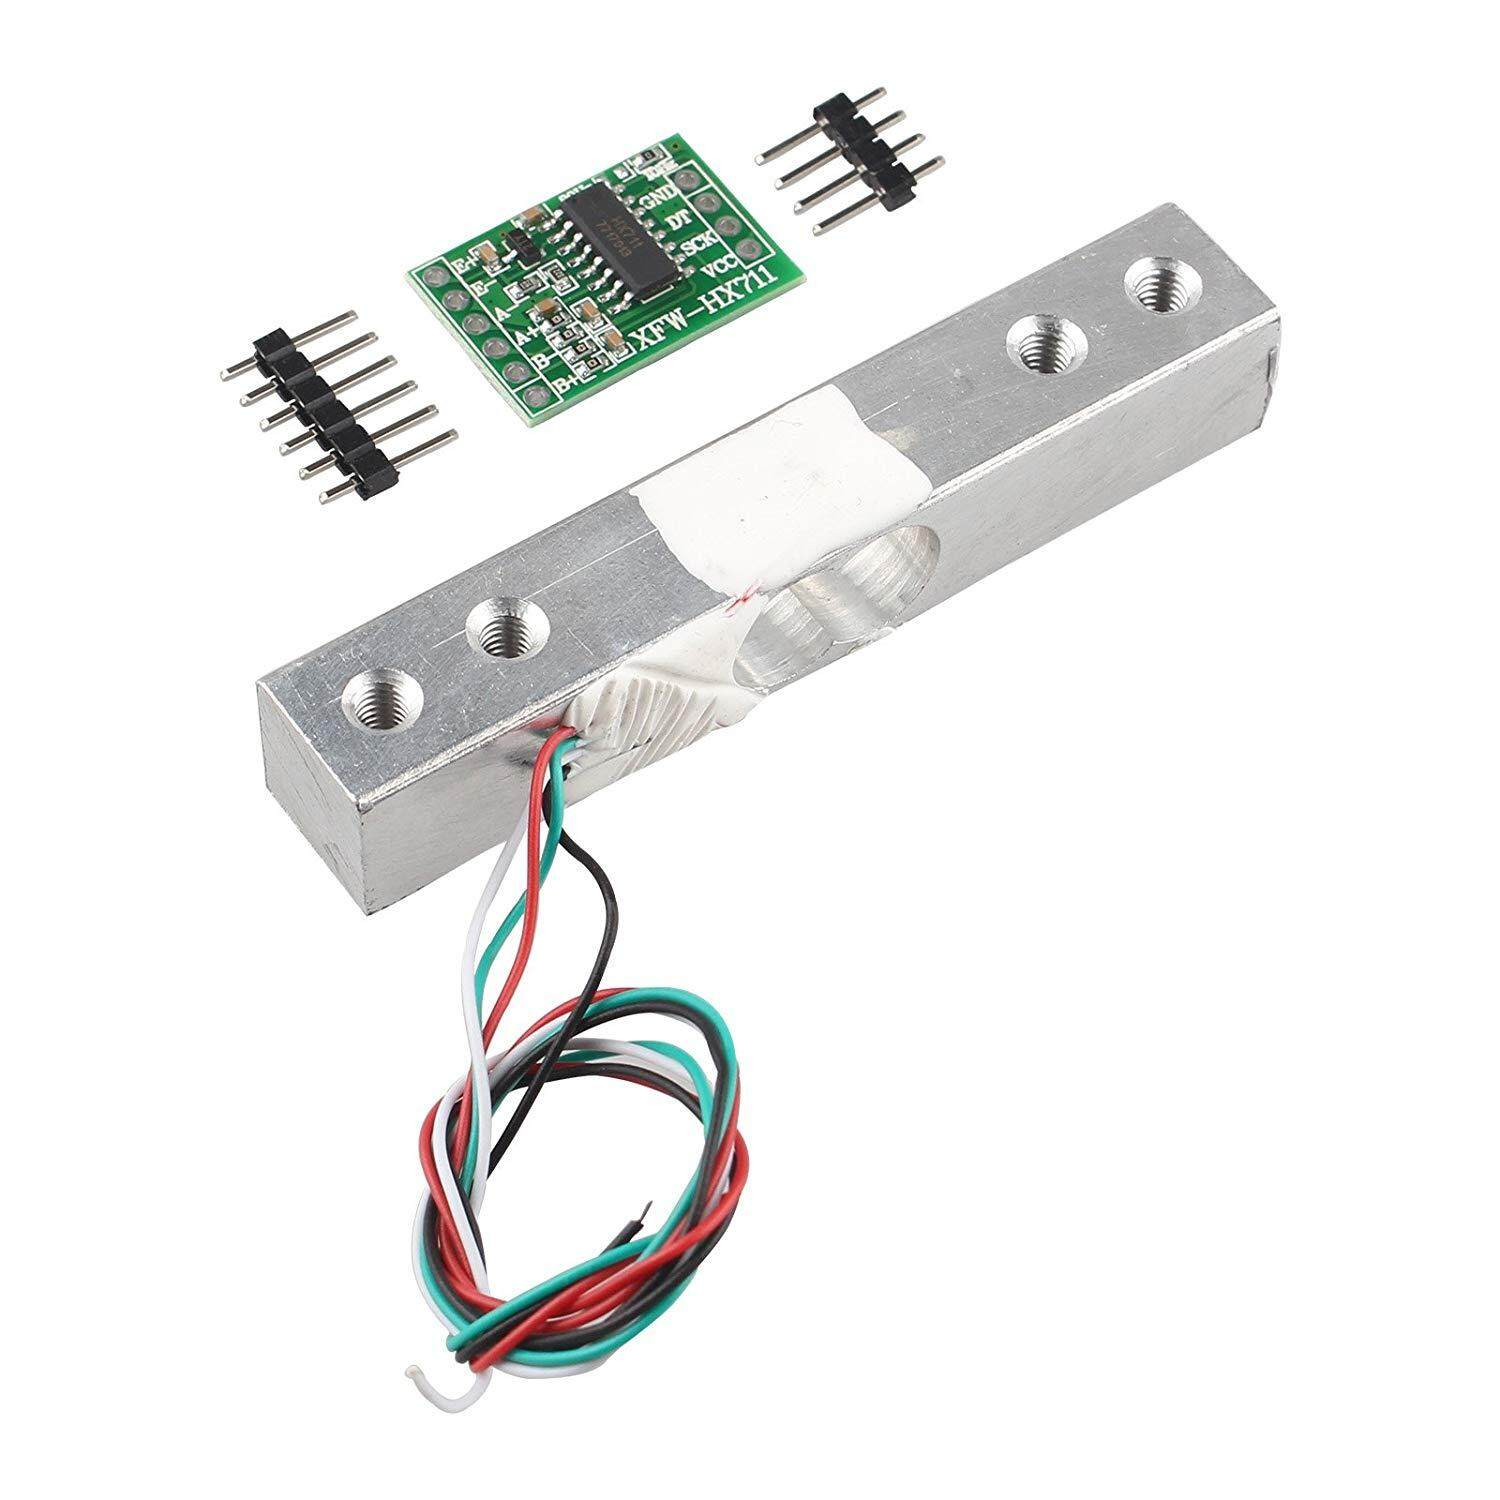 Features Sparkfun Load Cell Amplifier Hx711 Dan Harga Terbaru Info Arduino How To Set Up Sensor In A Full Bridge With Portable Electronic Weight Weighing 1kg Sensors Ad